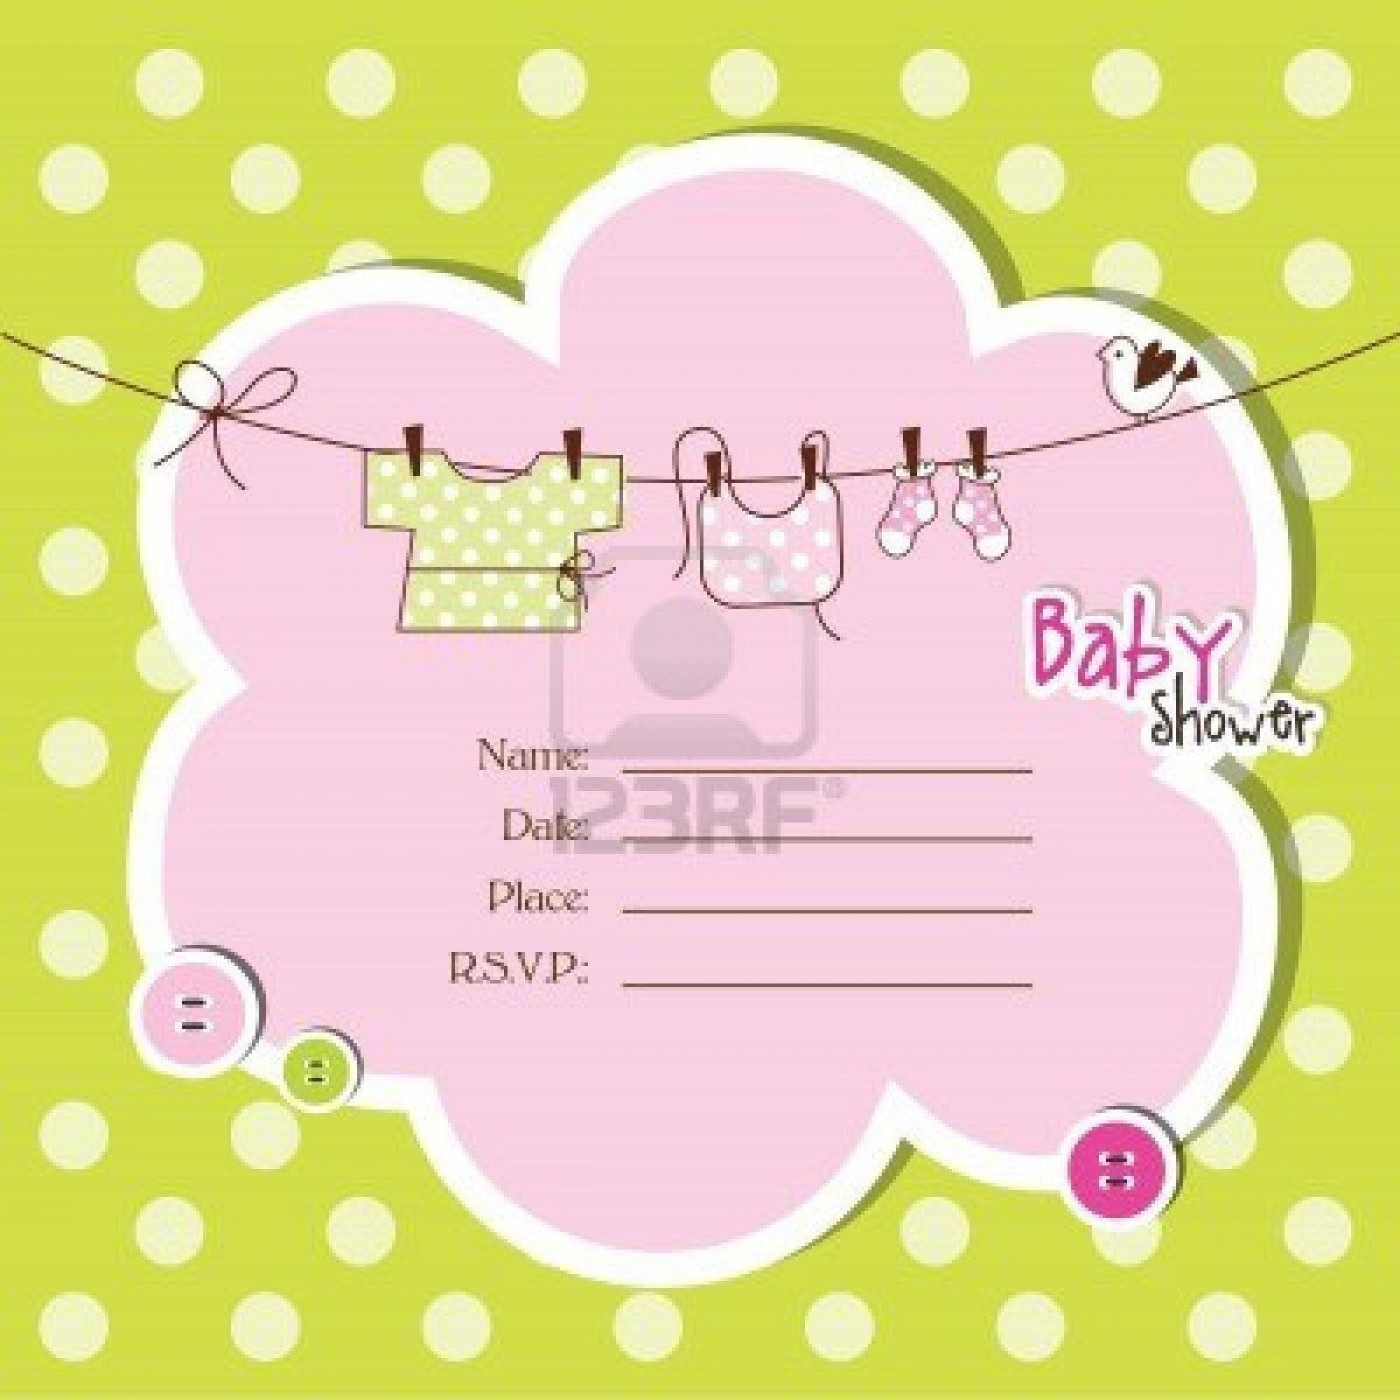 008 Magnificent Baby Shower Invitation Template Microsoft Word Highest Clarity  Free Editable1400